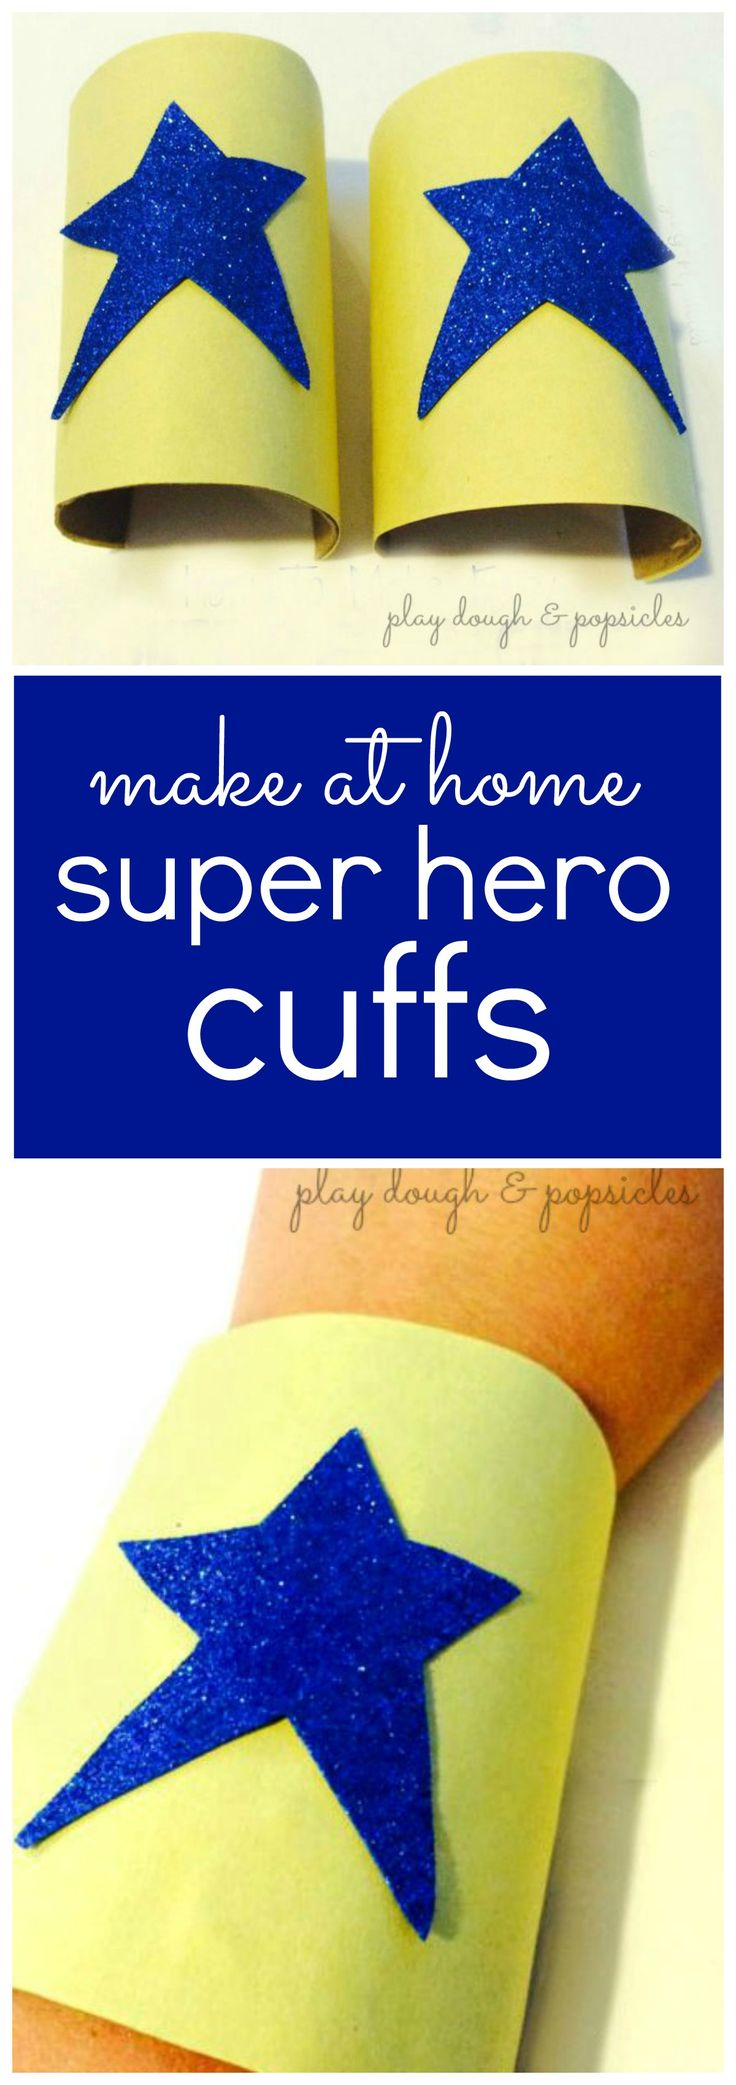 How To Make Easy Super Hero Cuffs for Kids - DIY Dress Up Clothes & Accessories. Easy Homemade Halloween Costume for Kids.